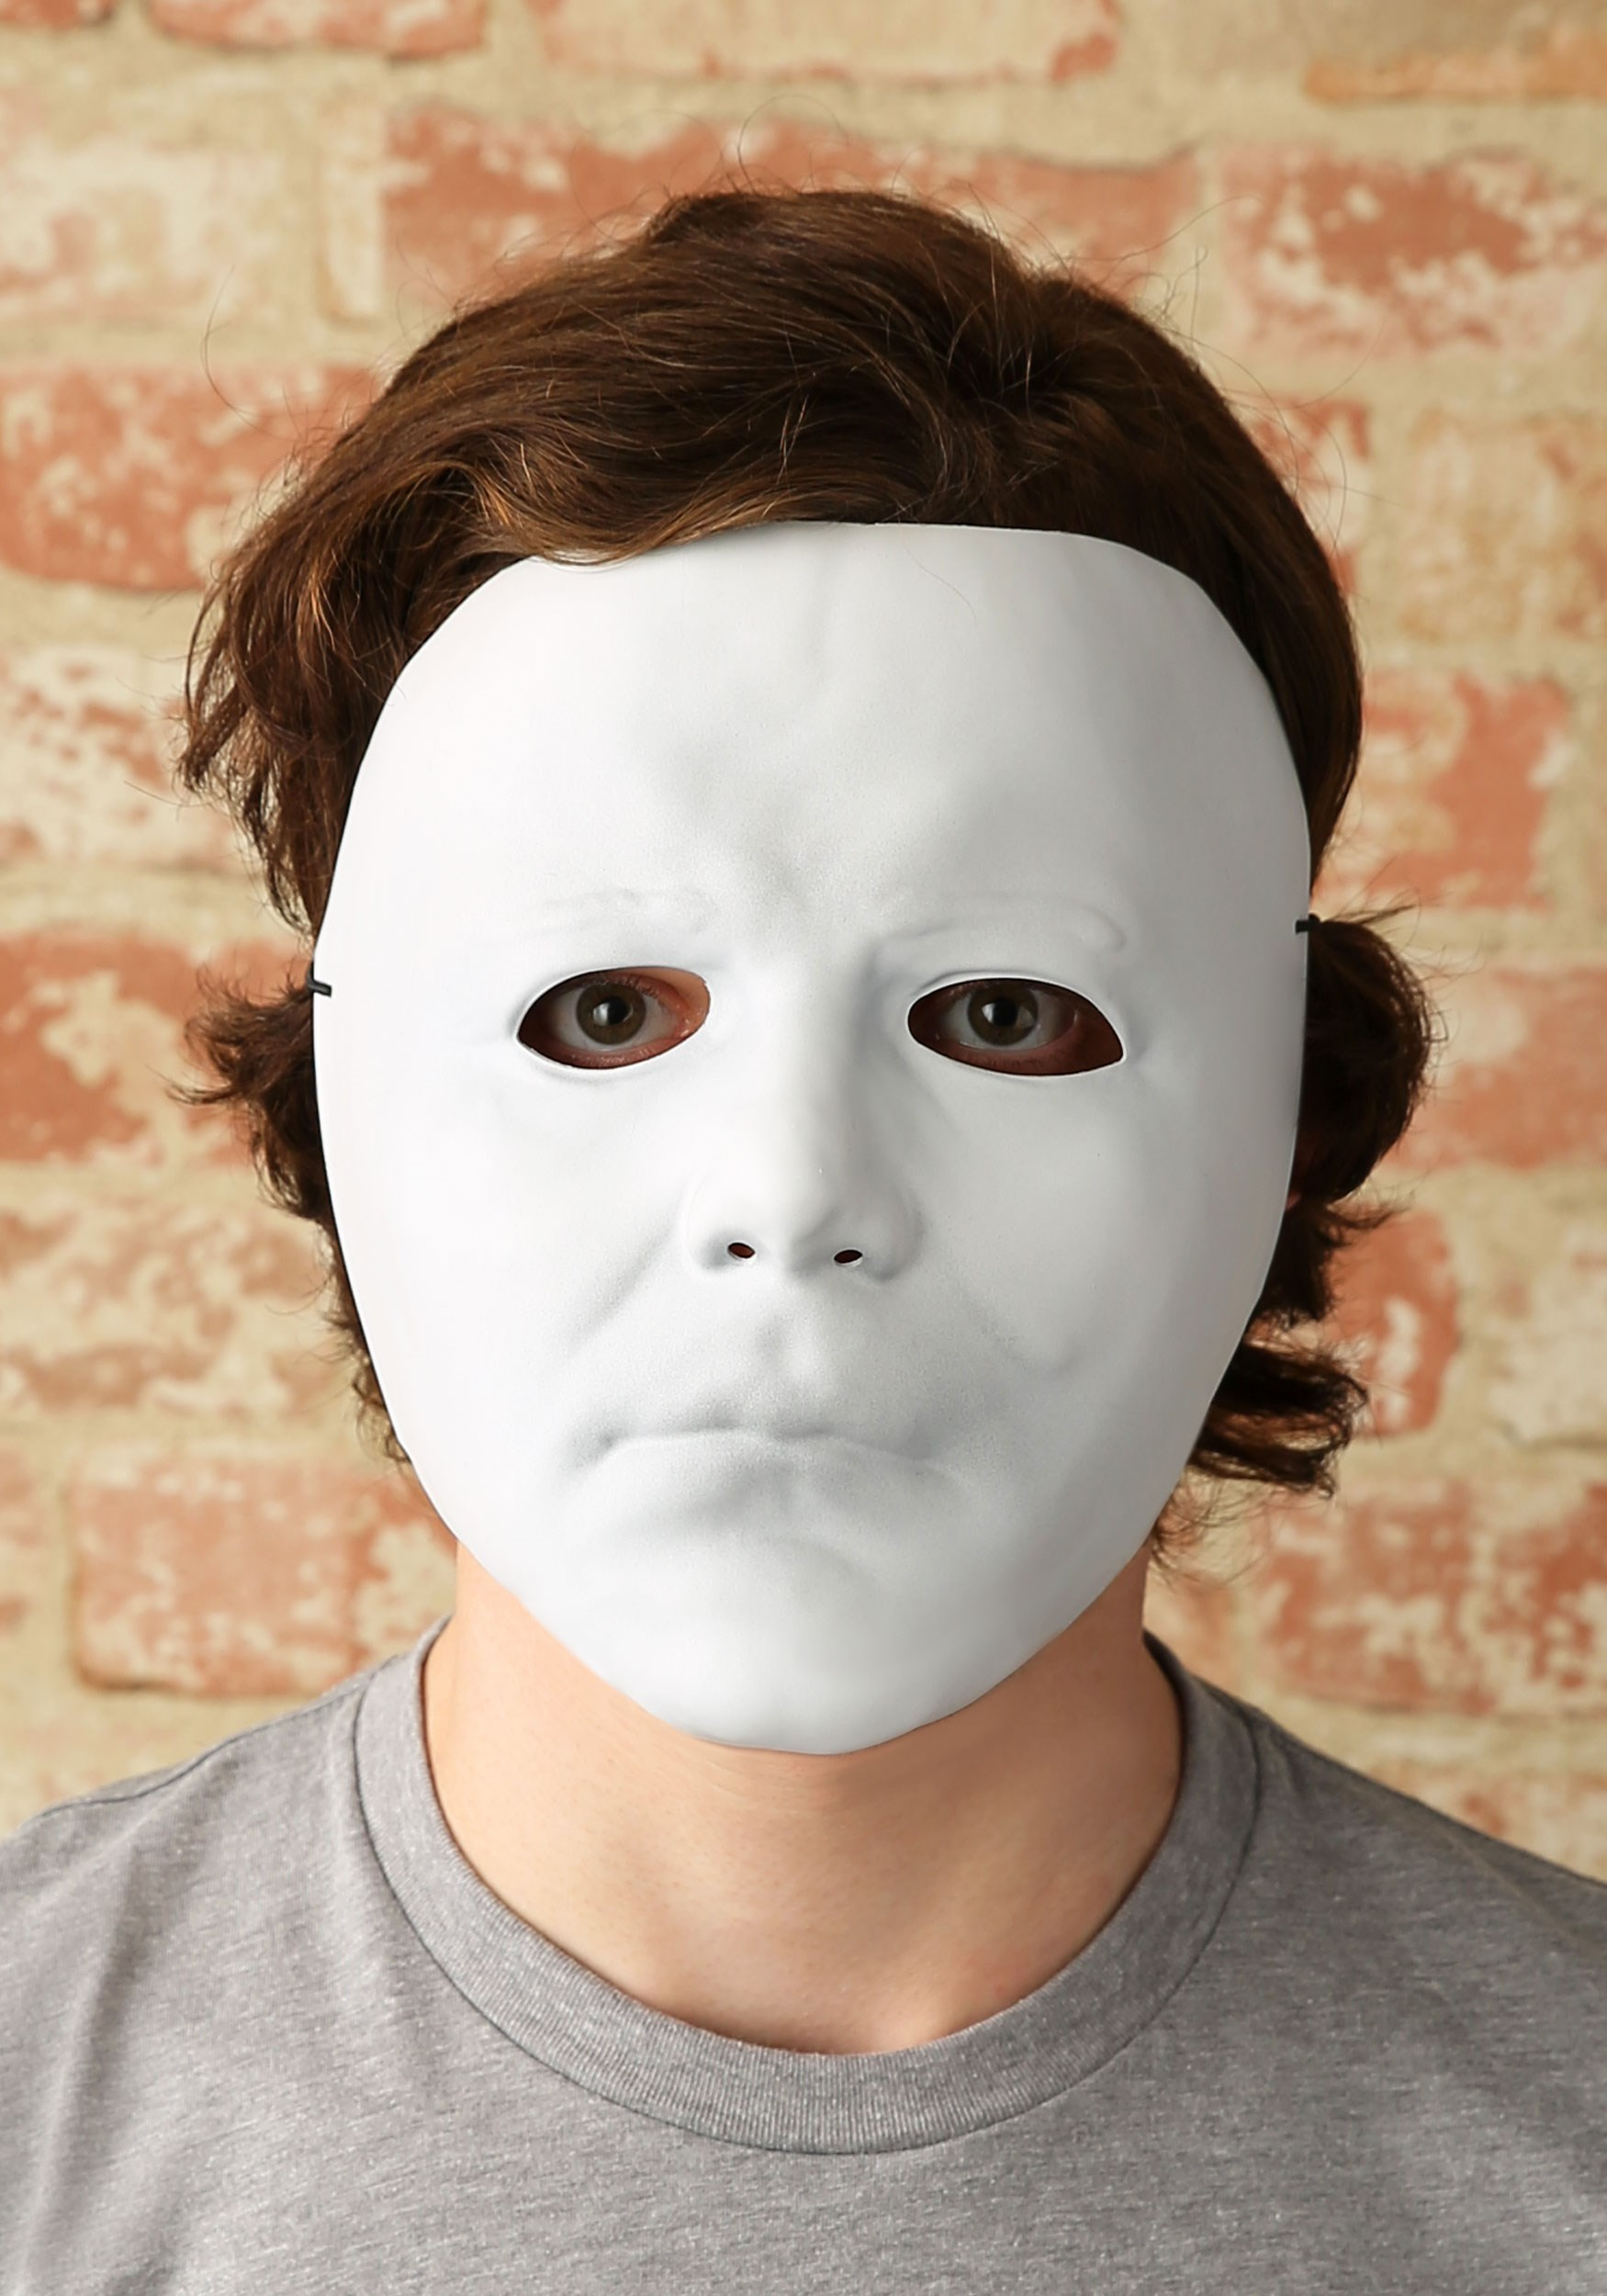 michael myers costumes & masks - halloweencostumes